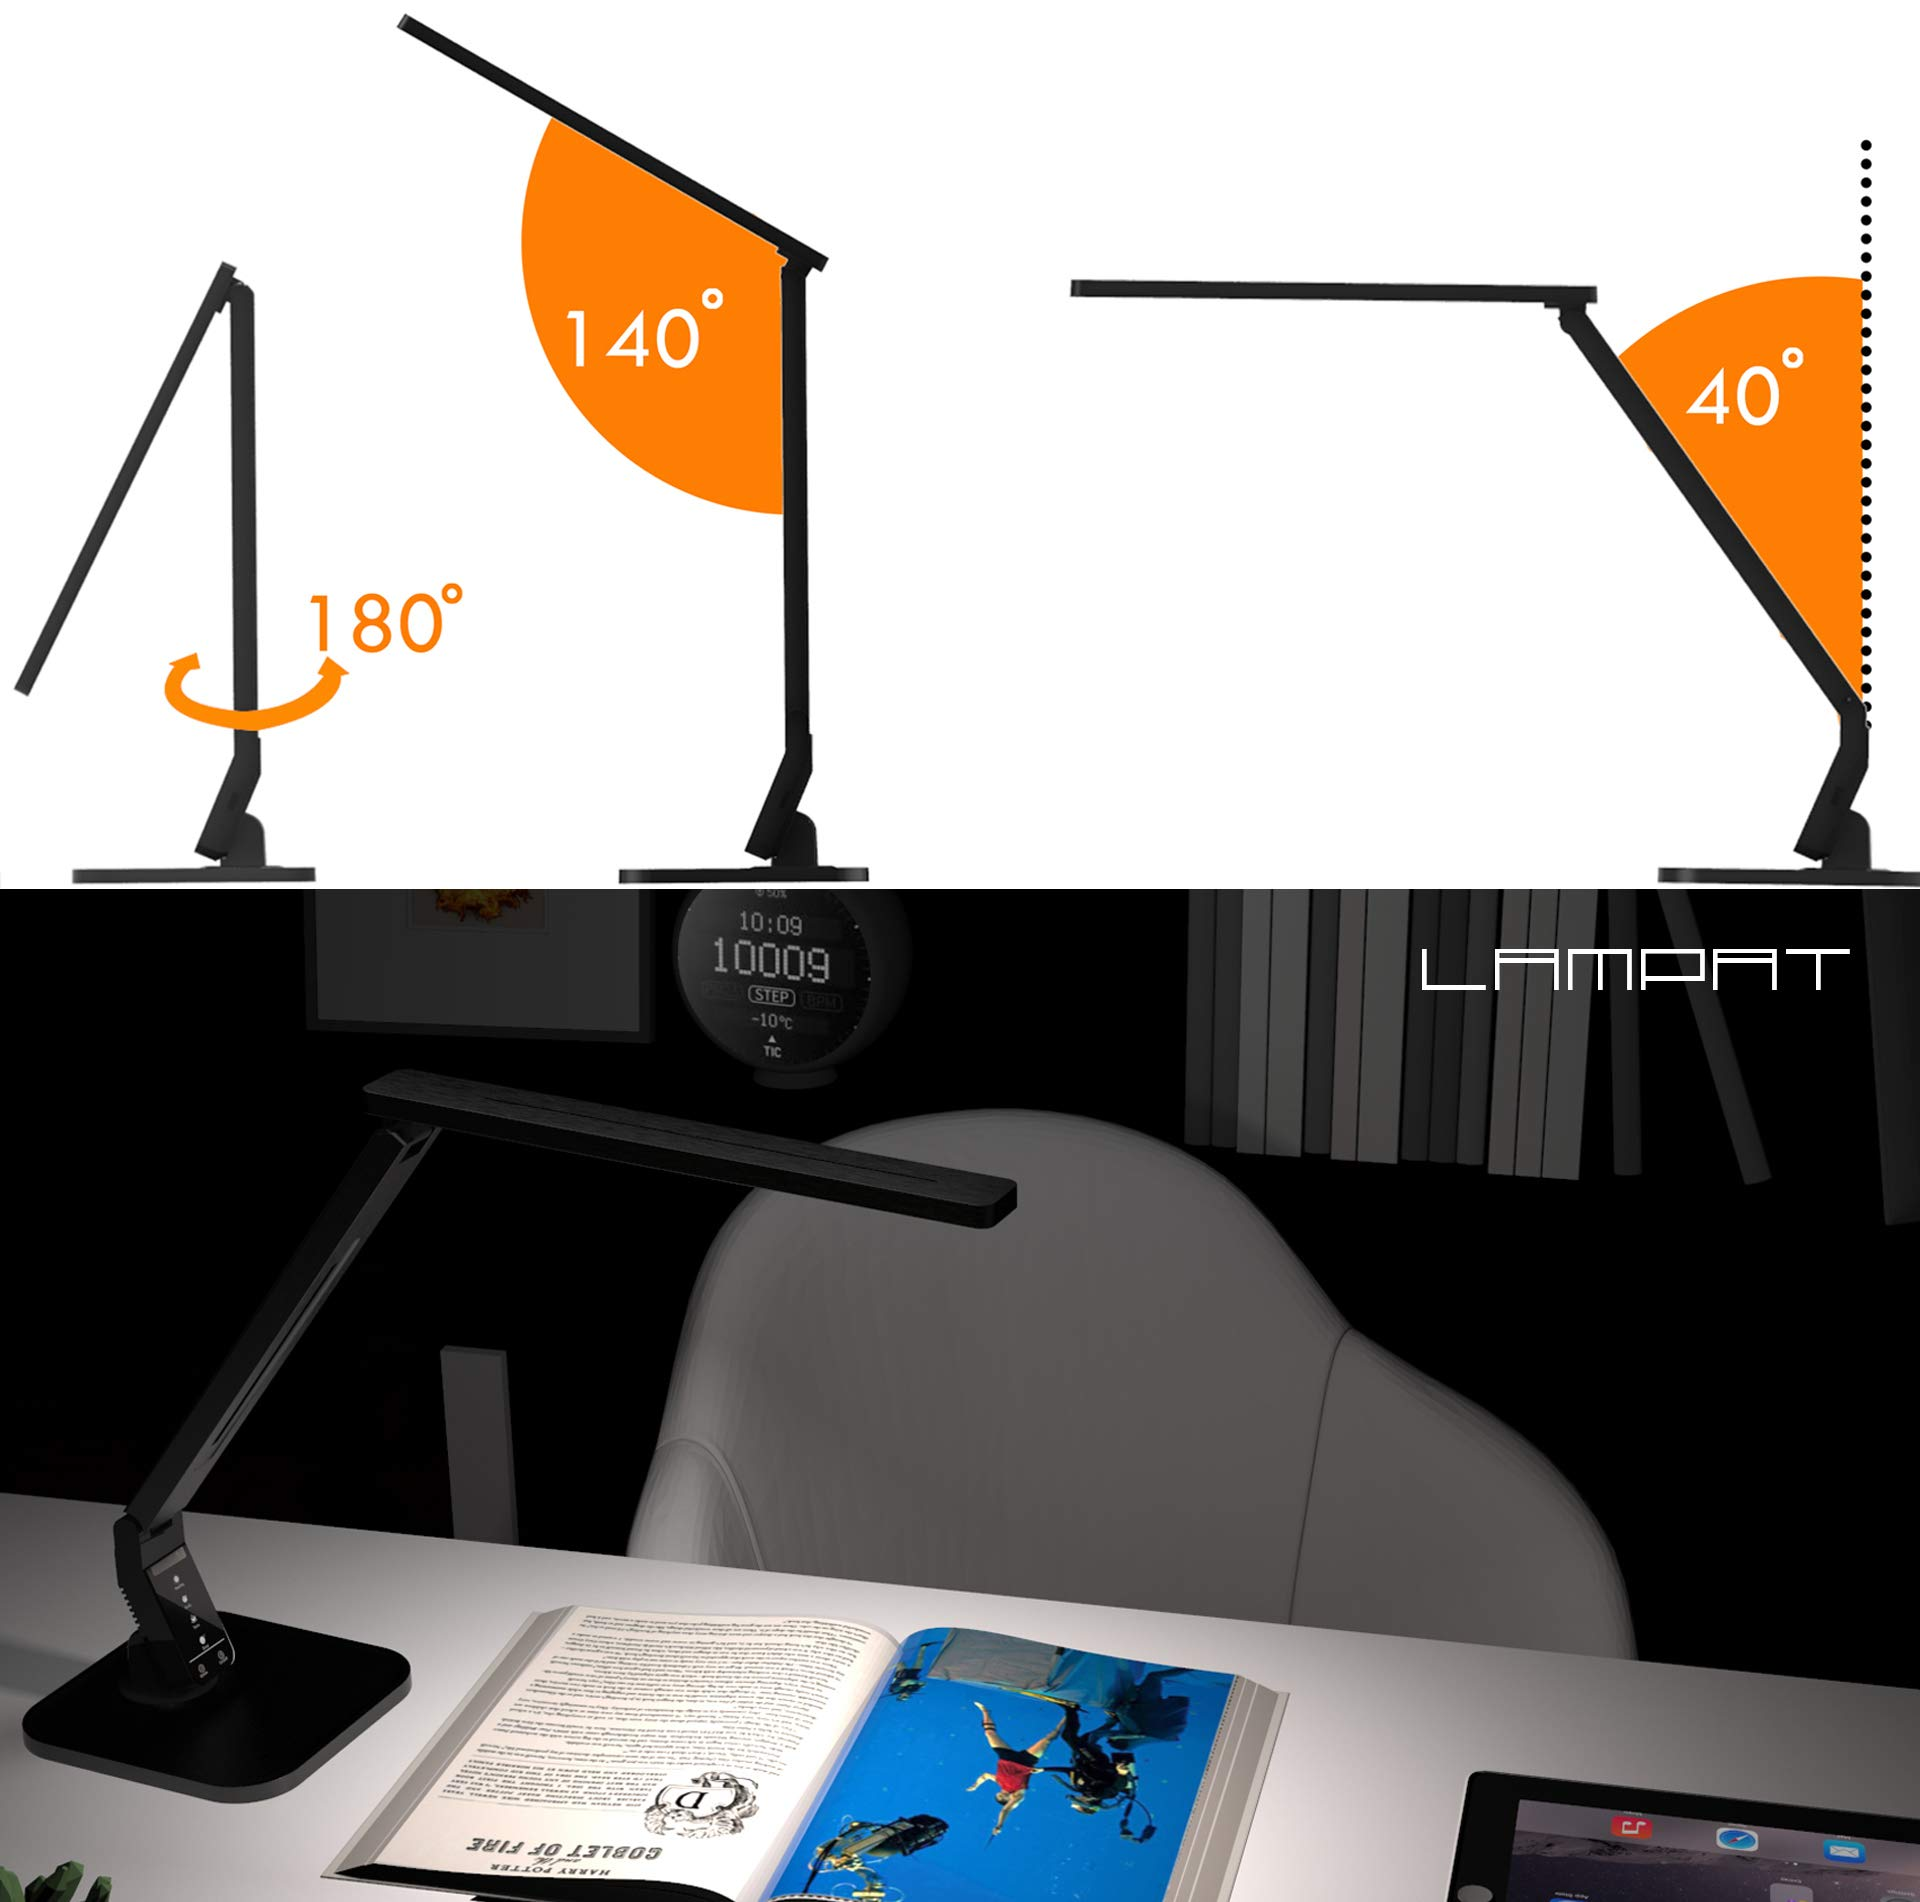 Lampat LED Desk Lamp, Dimmable LED Table Lamp Black, 4 Lighting Modes, 5-Level Dimmer, Touch-Sensitive Control Panel, 1-Hour Auto Timer, 5V/2A USB Charging Port) by LAMPAT (Image #6)